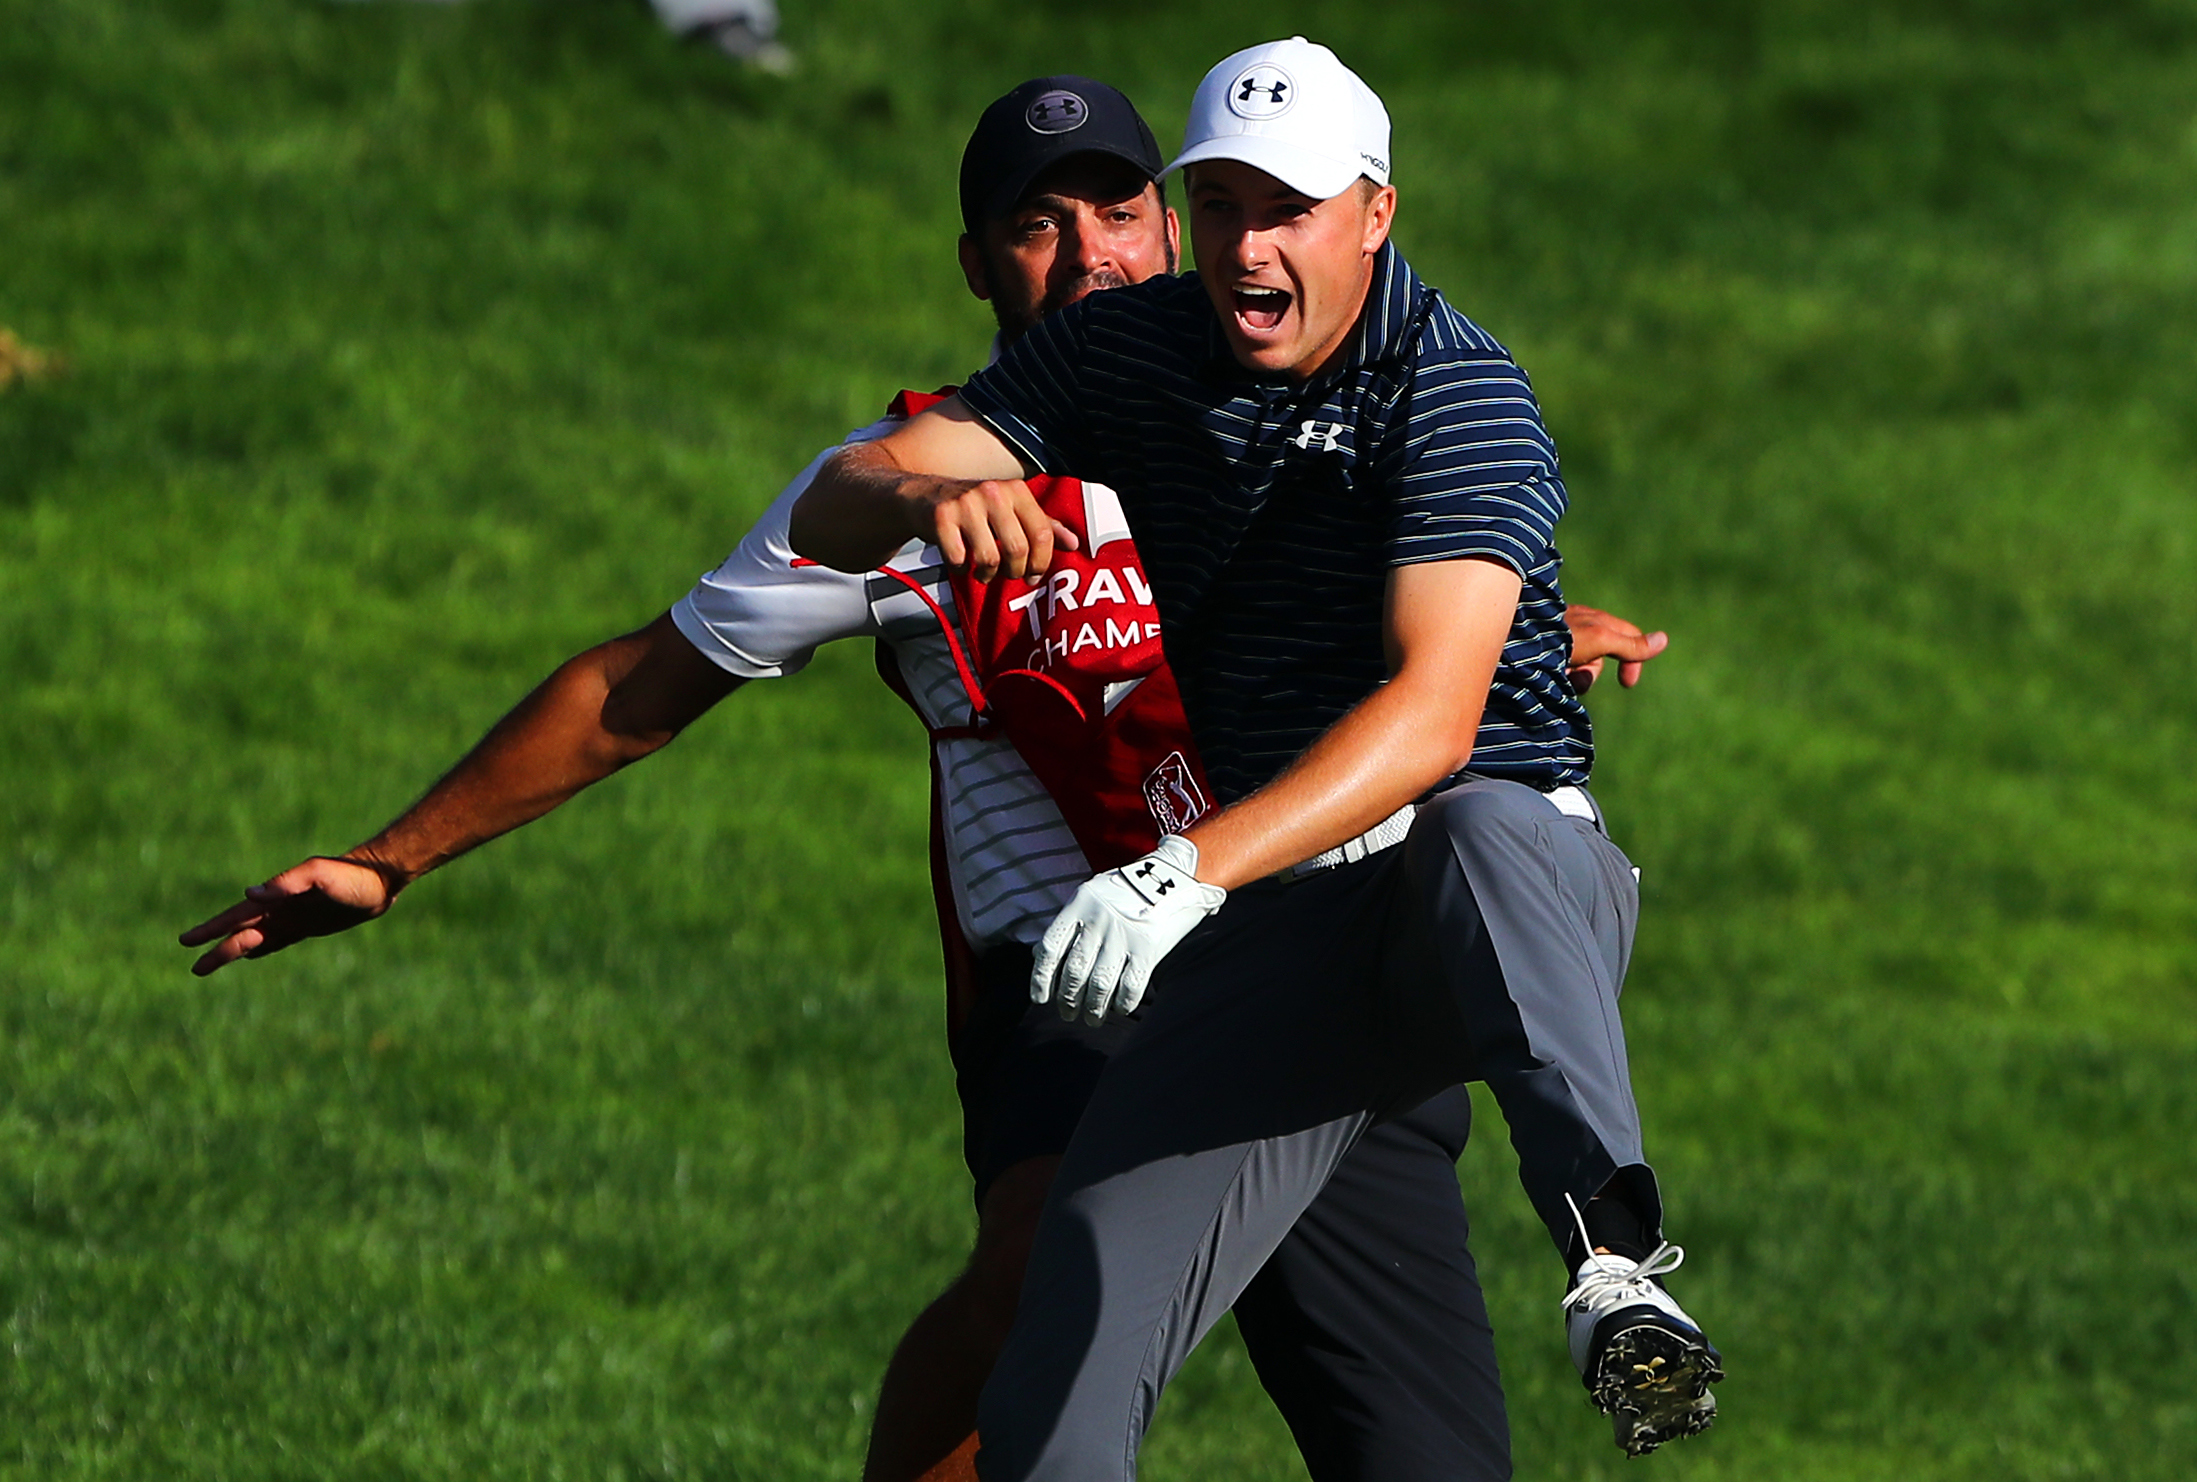 CROMWELL, CT - JUNE 25: Jordan Spieth of the United States celebrates with caddie Michael Greller after chipping in for birdie from a bunker on the 18th green to win the Travelers Championship in a playoff against Daniel Berger of the United States (not pictured) at TPC River Highlands on June 25, 2017 in Cromwell, Connecticut. (Photo by Tim Bradbury/Getty Images)